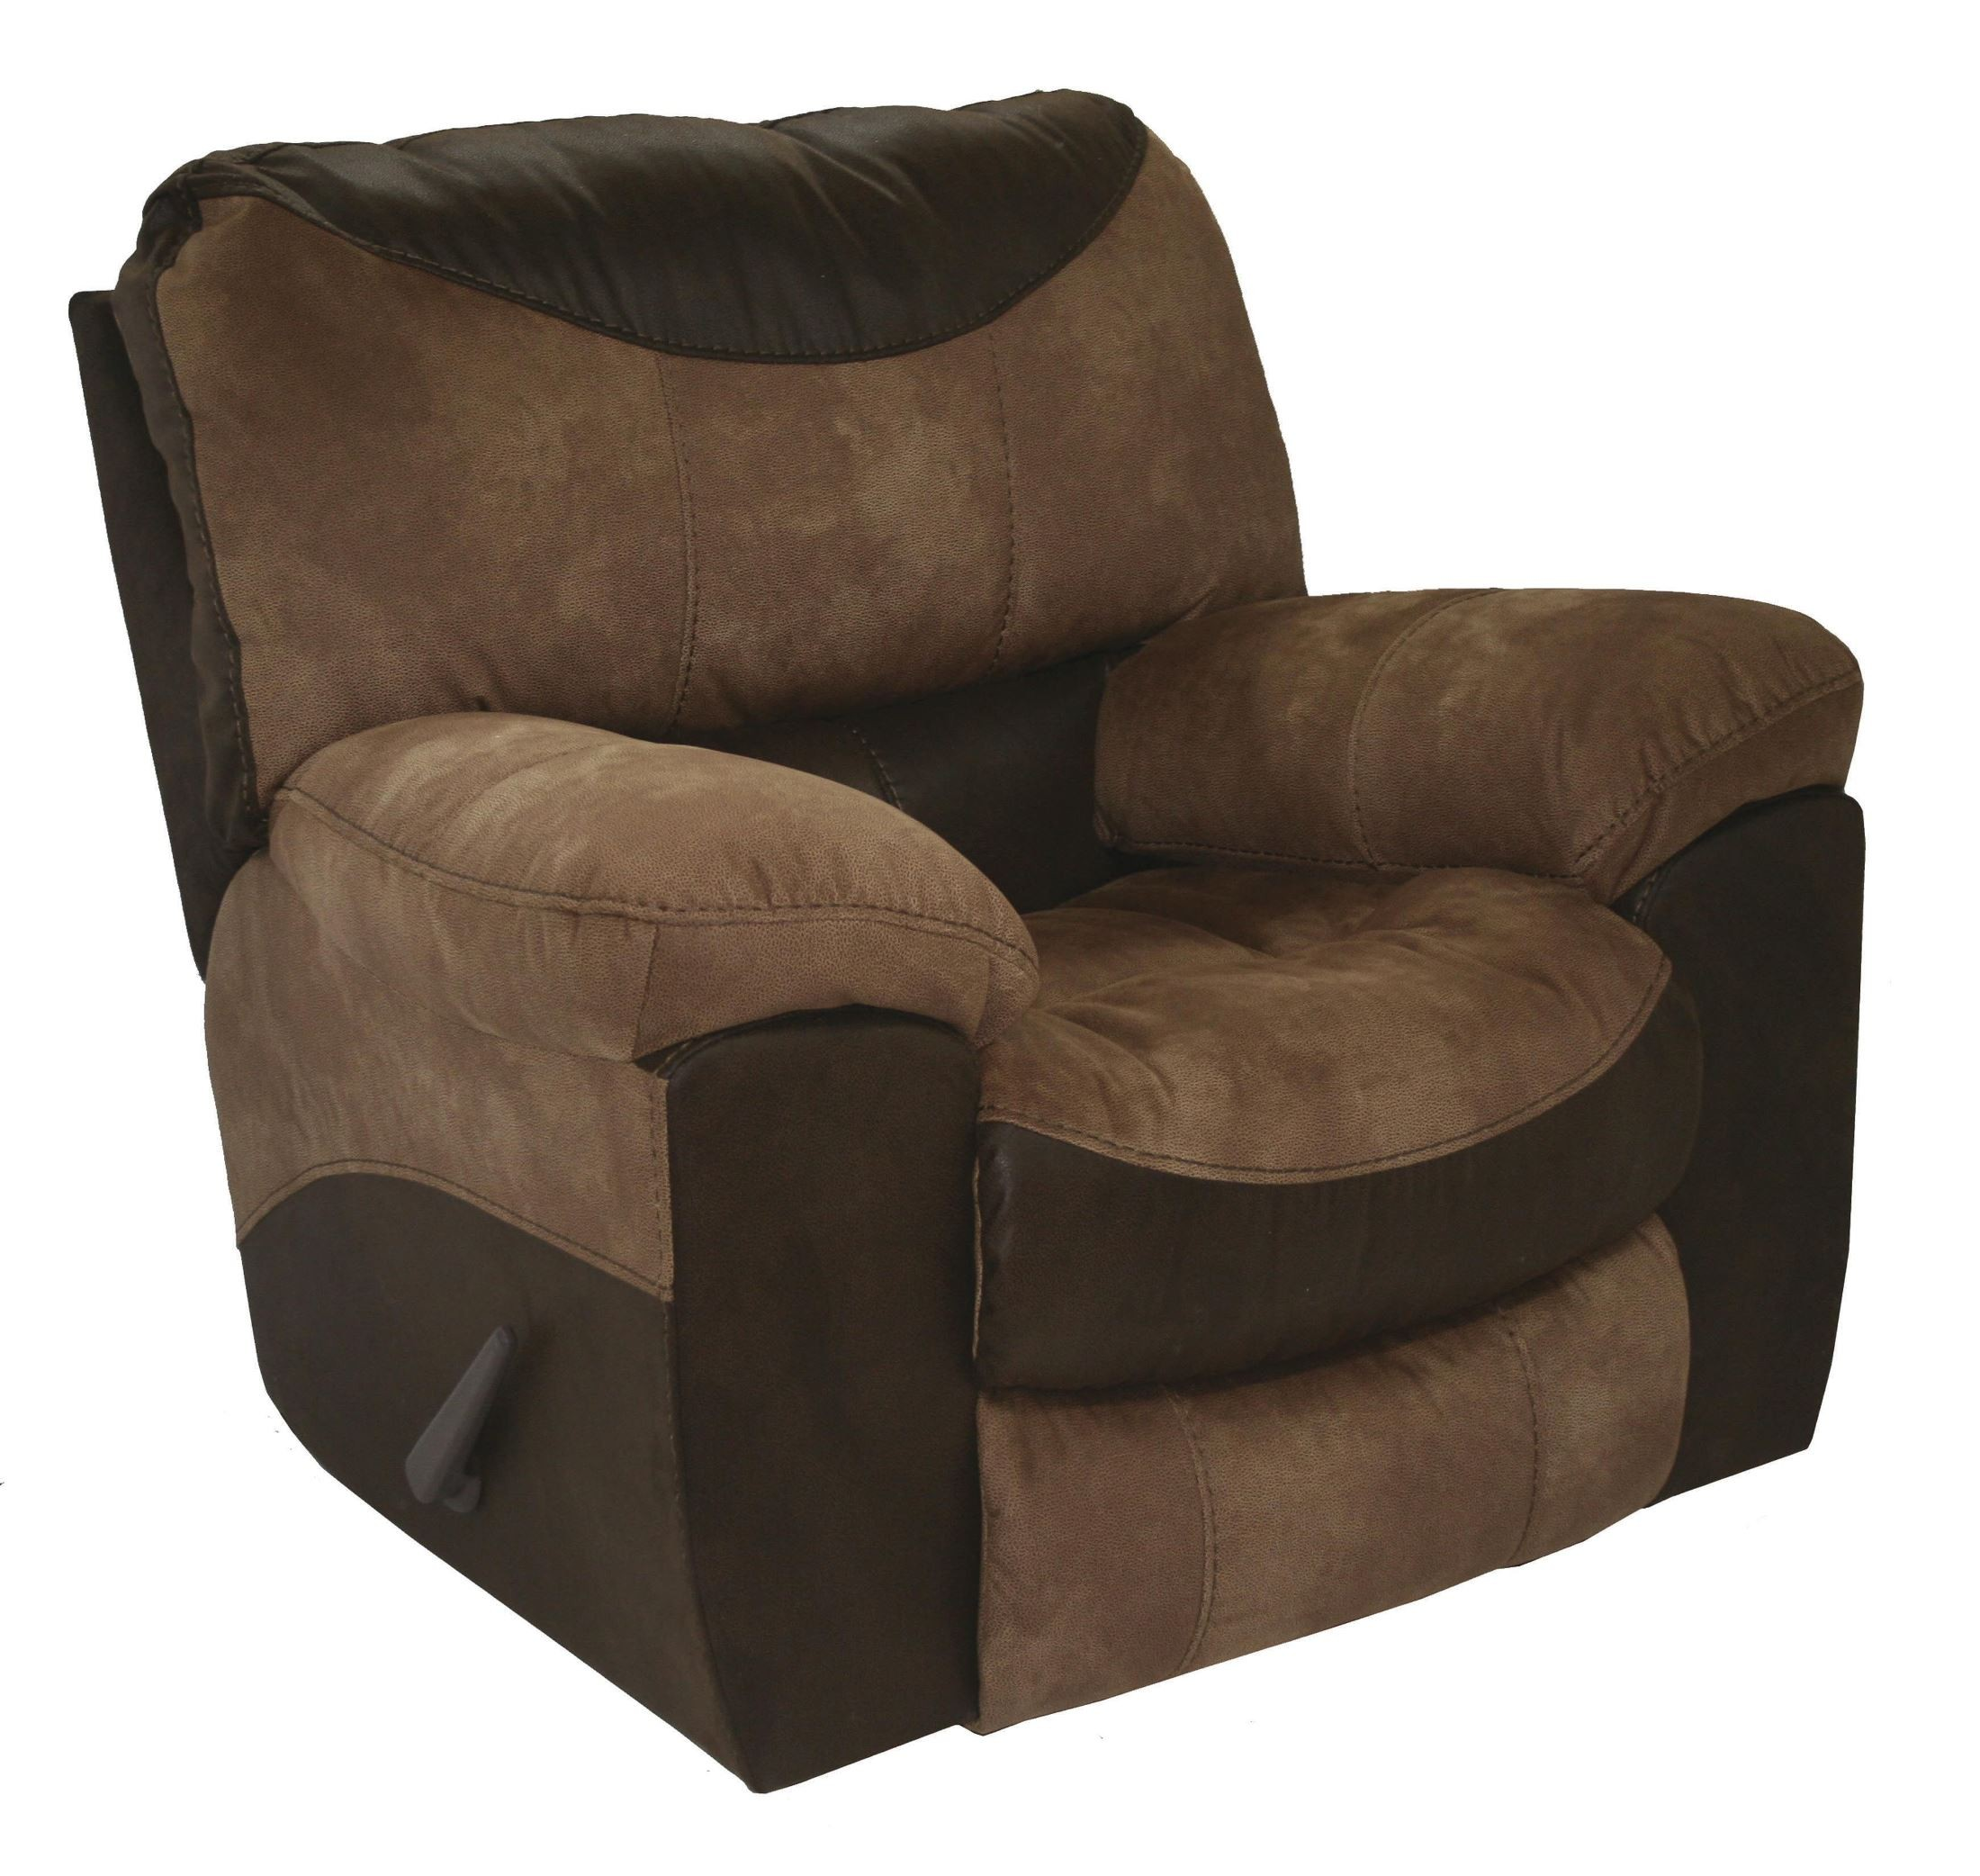 Portman saddle chocolate recliner from catnapper for Catnapper chaise